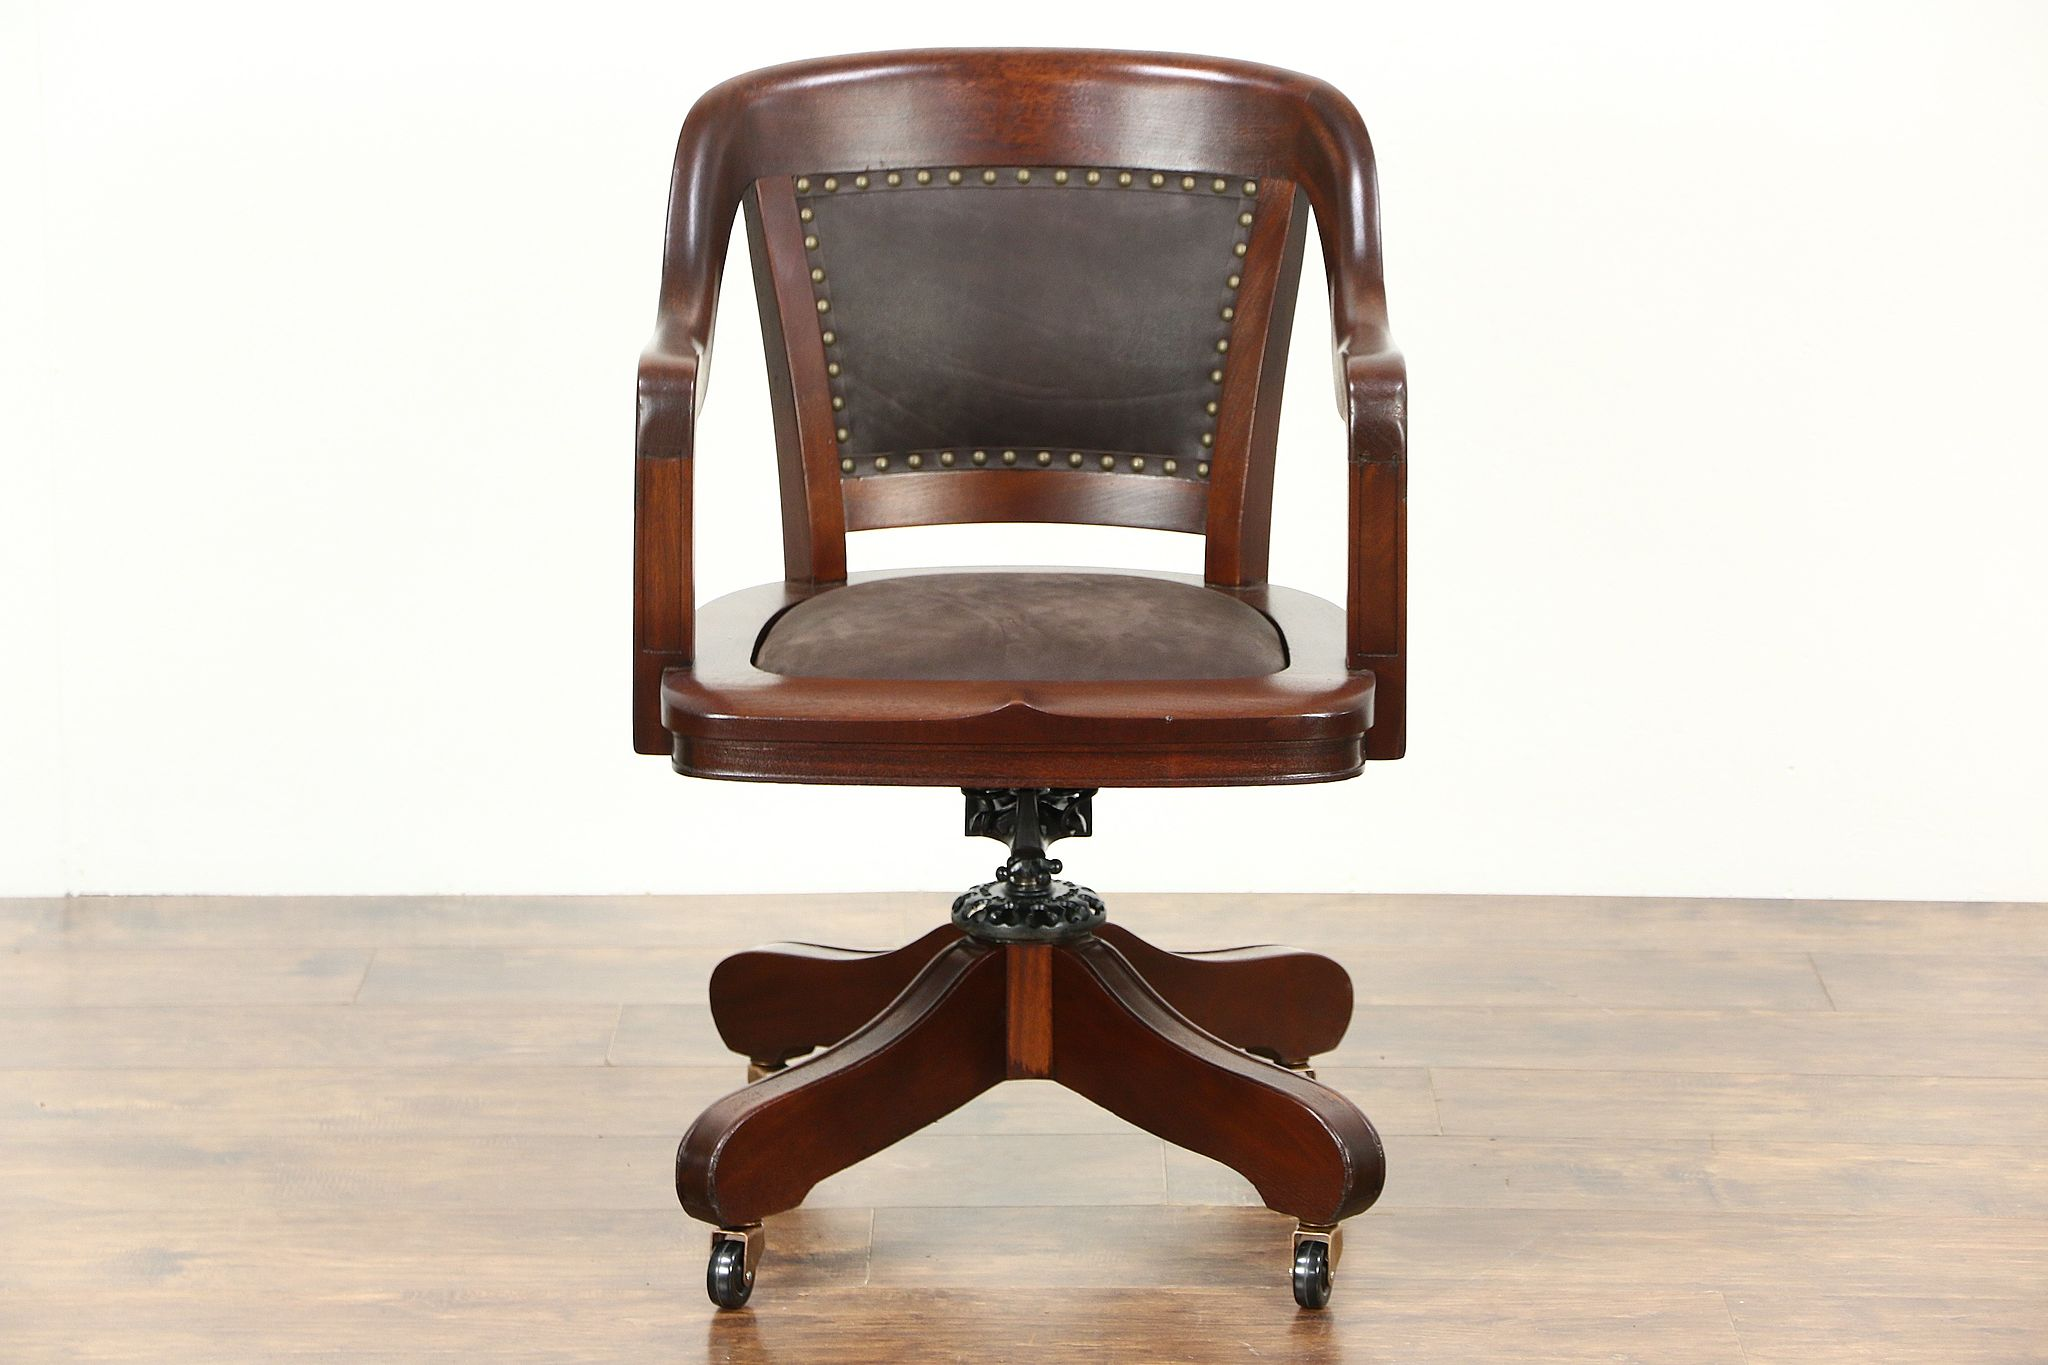 sold swivel adjustable antique desk chair mahogany leather